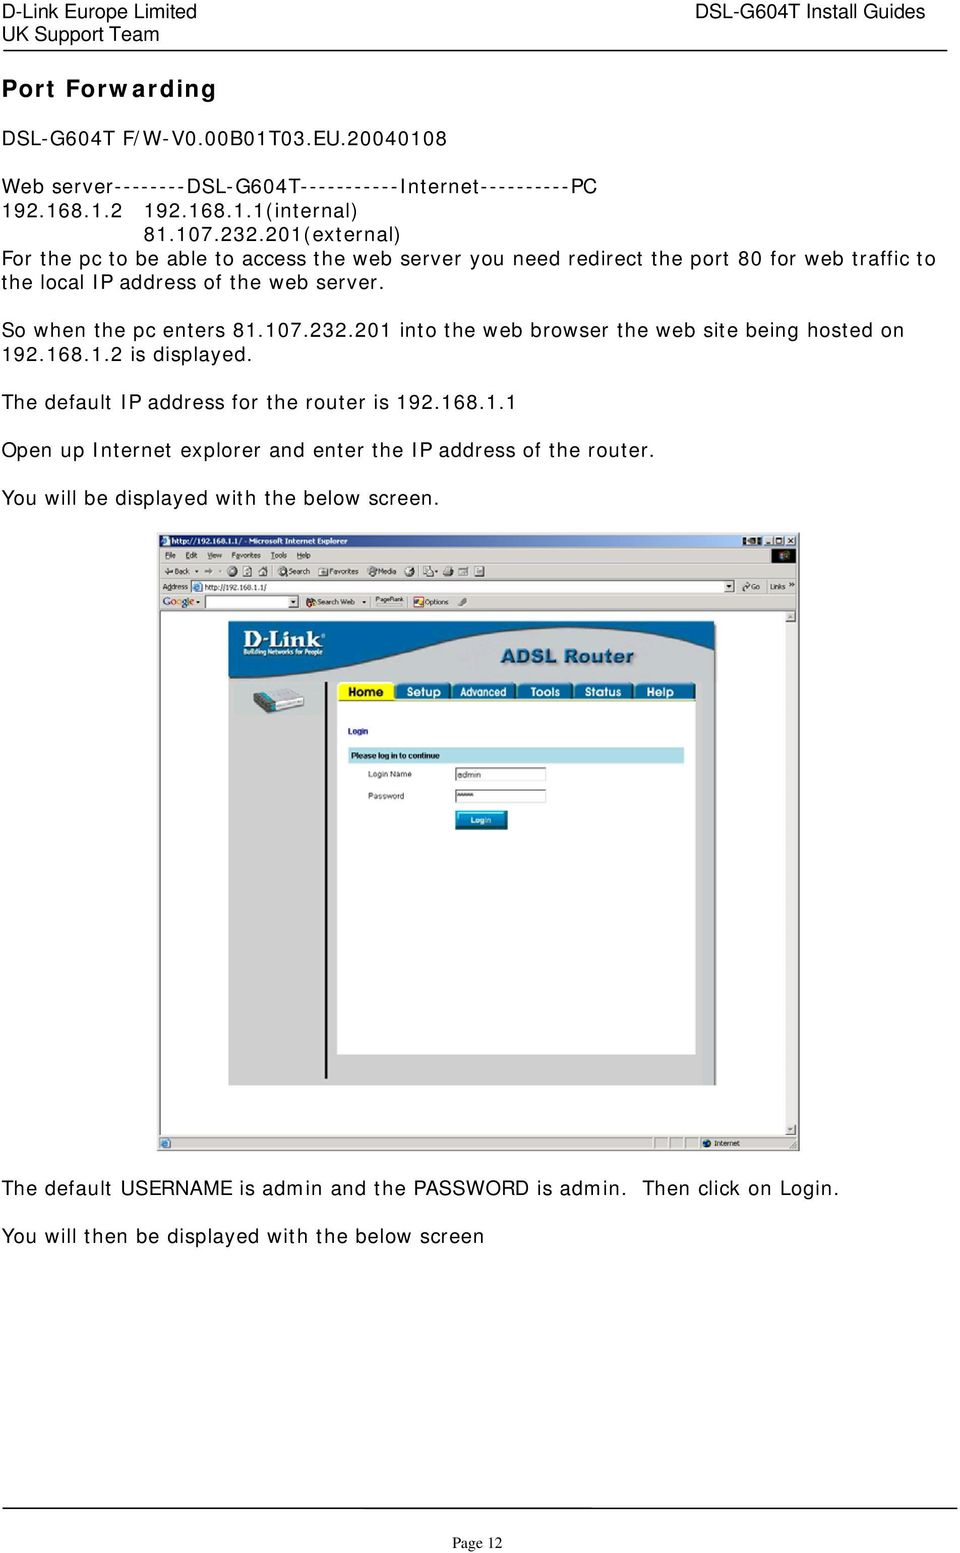 232.201 into the web browser the web site being hosted on 192.168.1.2 is displayed. The default IP address for the router is 192.168.1.1 Open up Internet explorer and enter the IP address of the router.